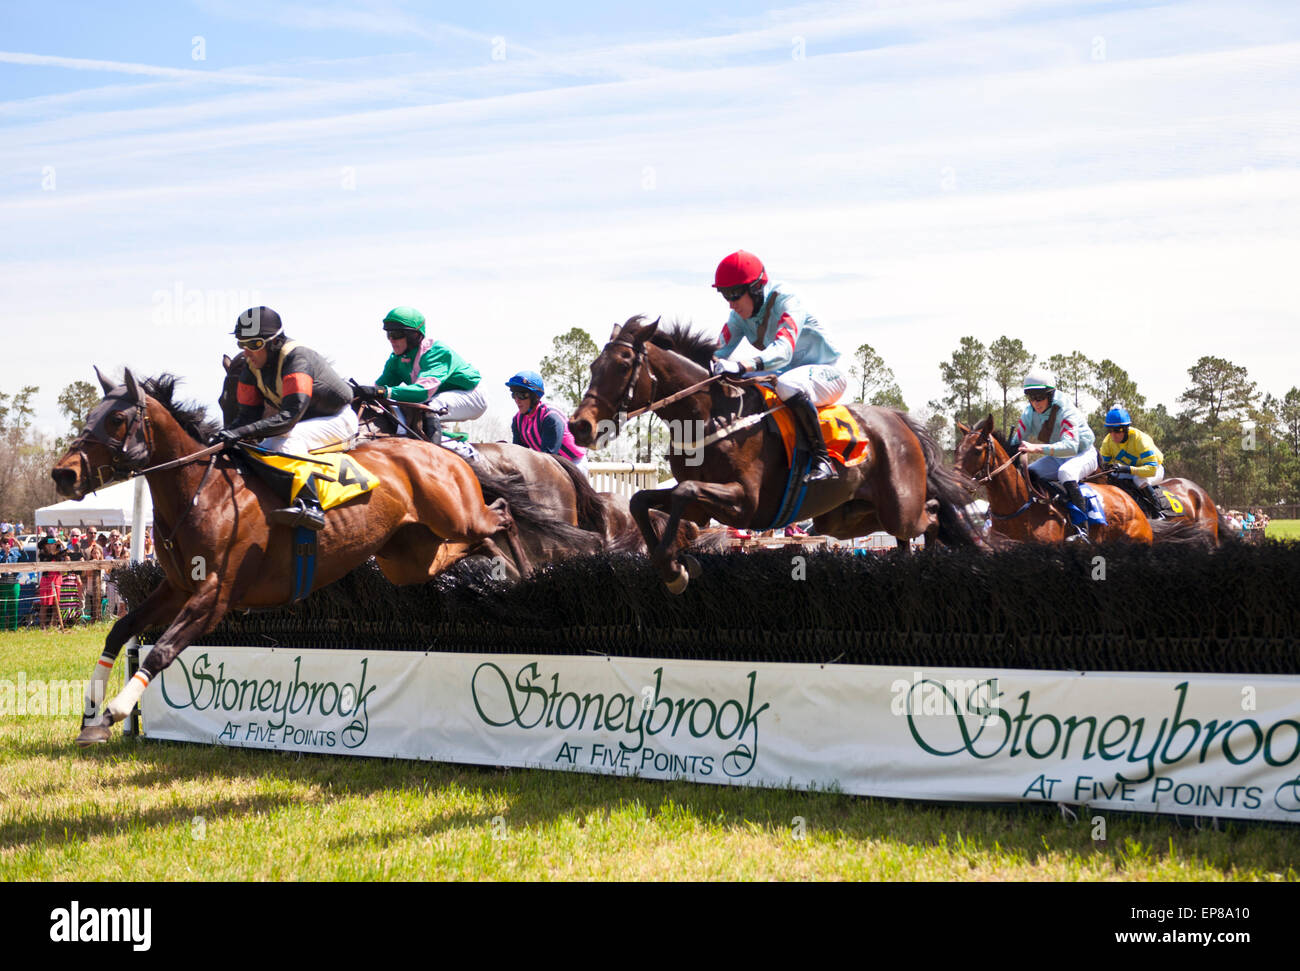 The 64th Running of the Stoneybrook Steeplechase Races, horses and jockeys hit the backstretch hurdles. - Stock Image